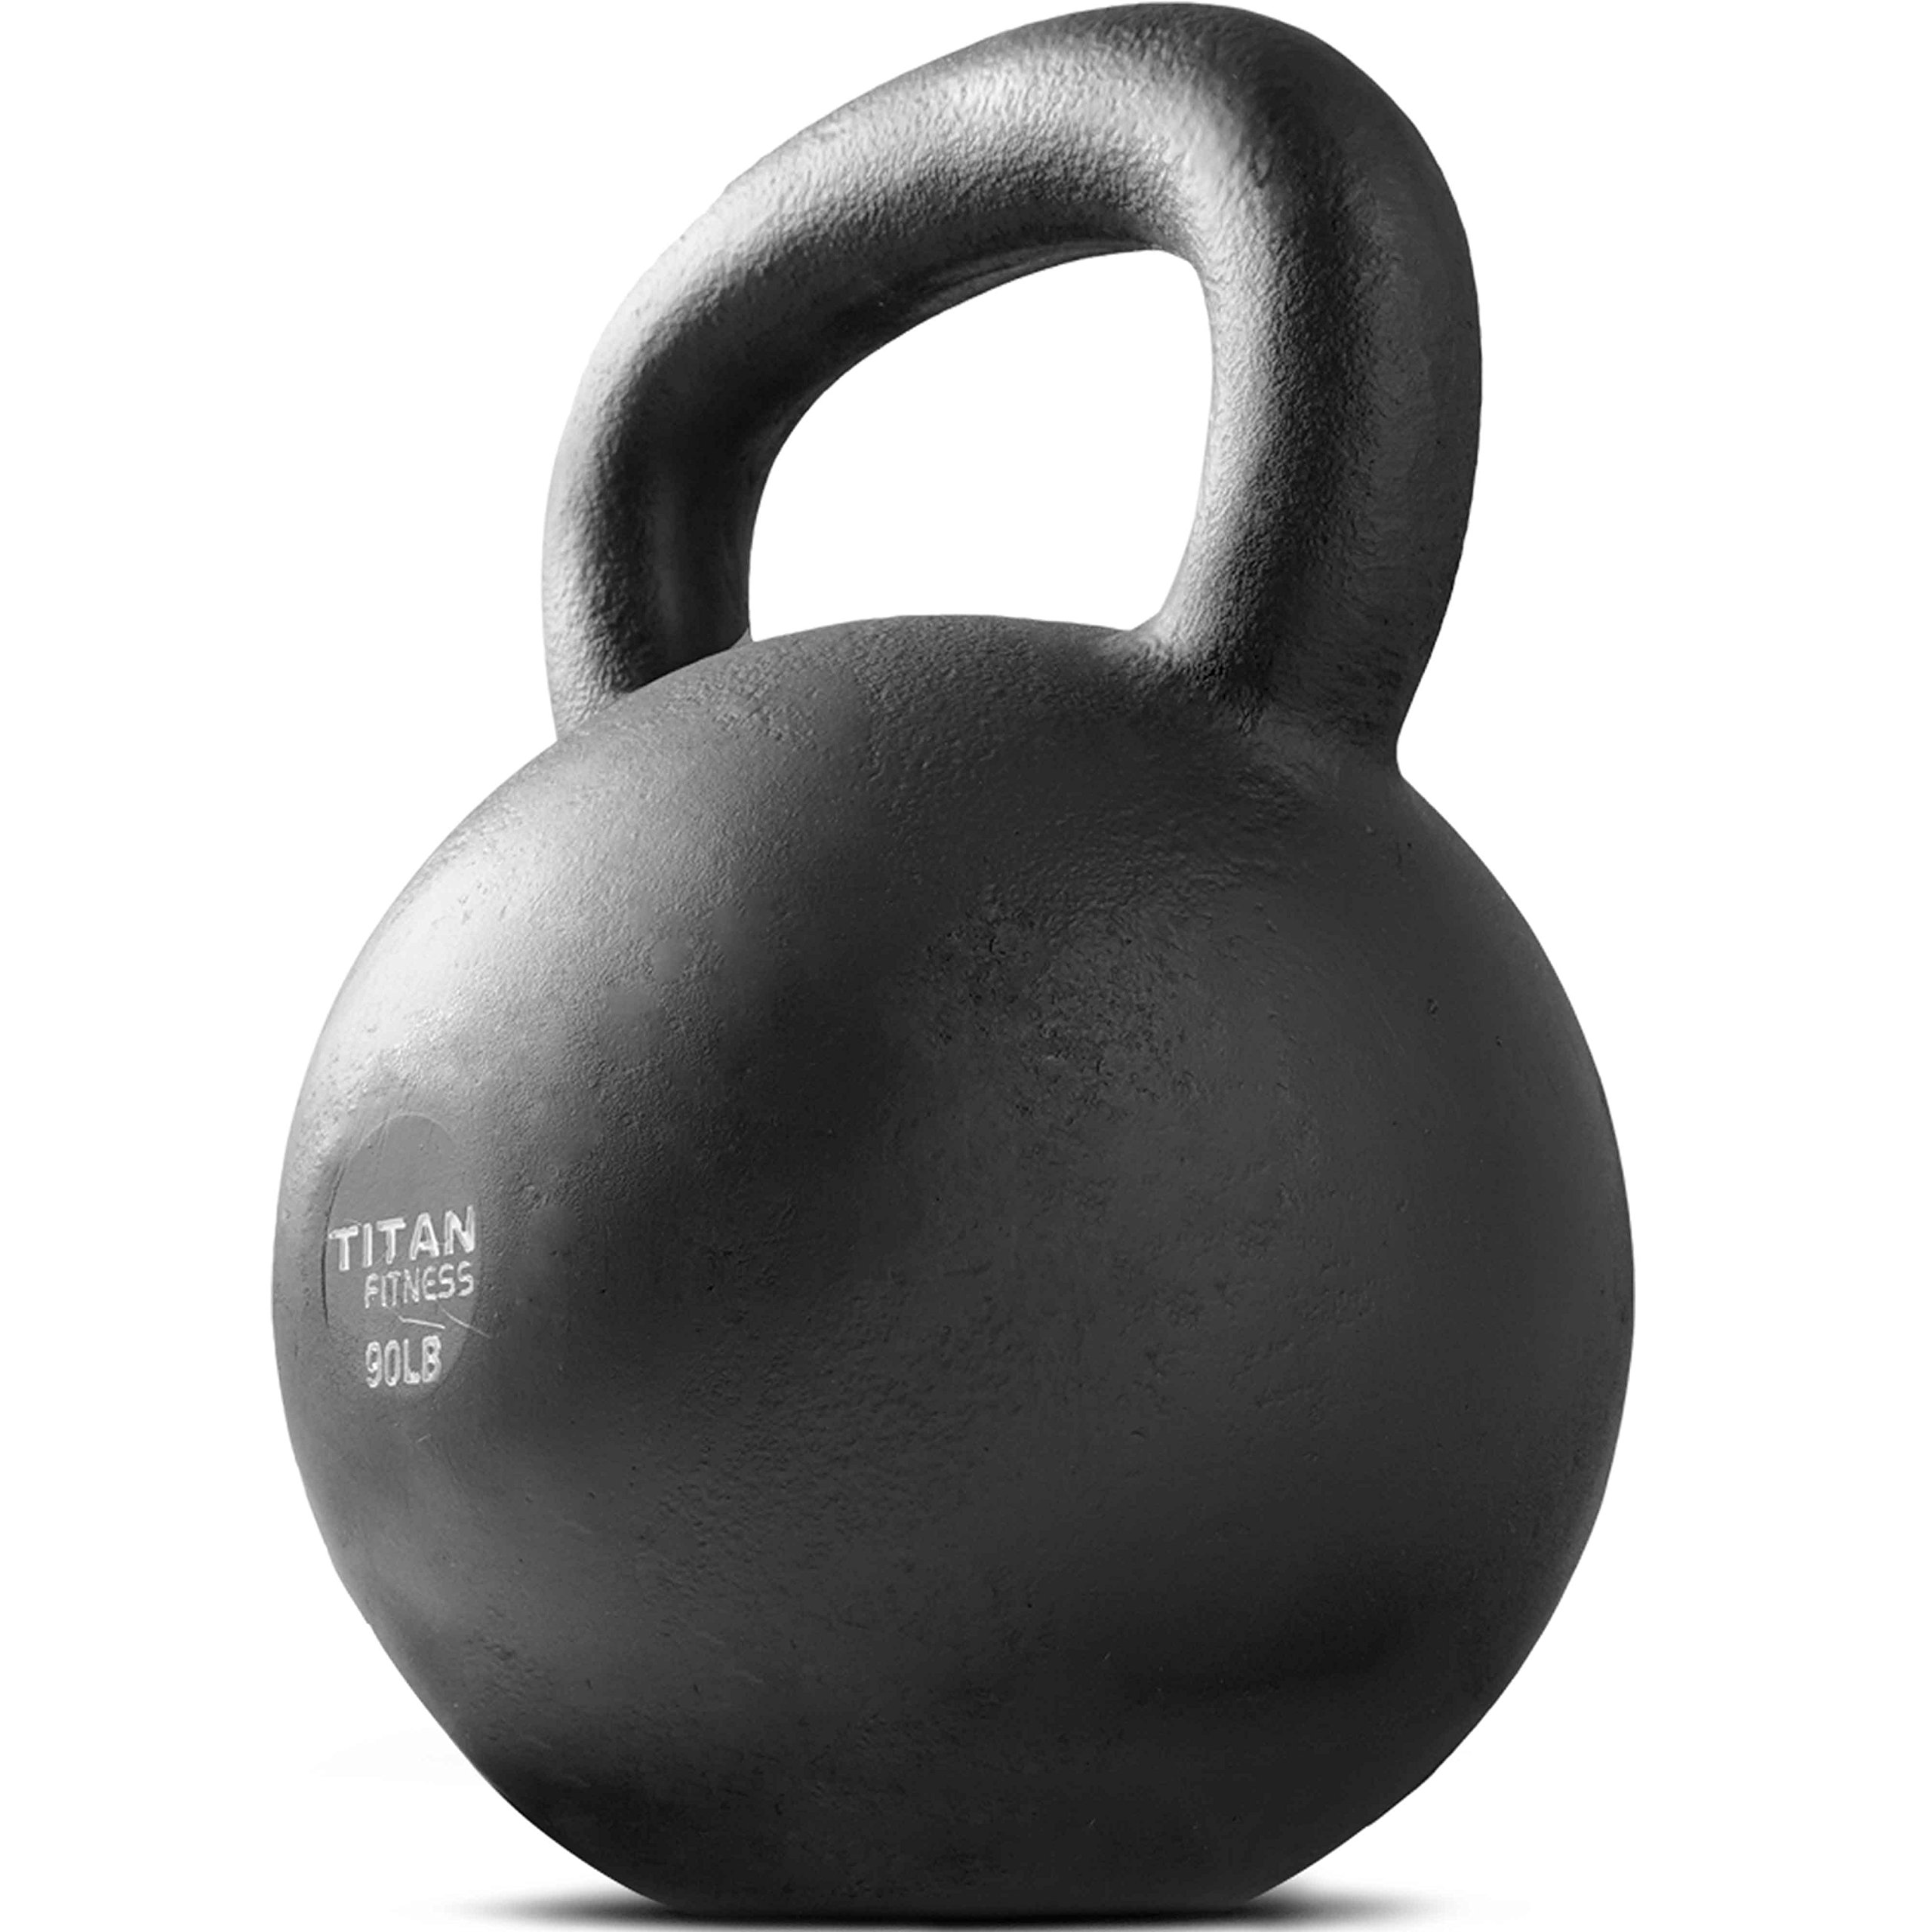 Cast Iron Kettlebell Weight 90 lb Natural Solid Titan Fitness Workout Swing